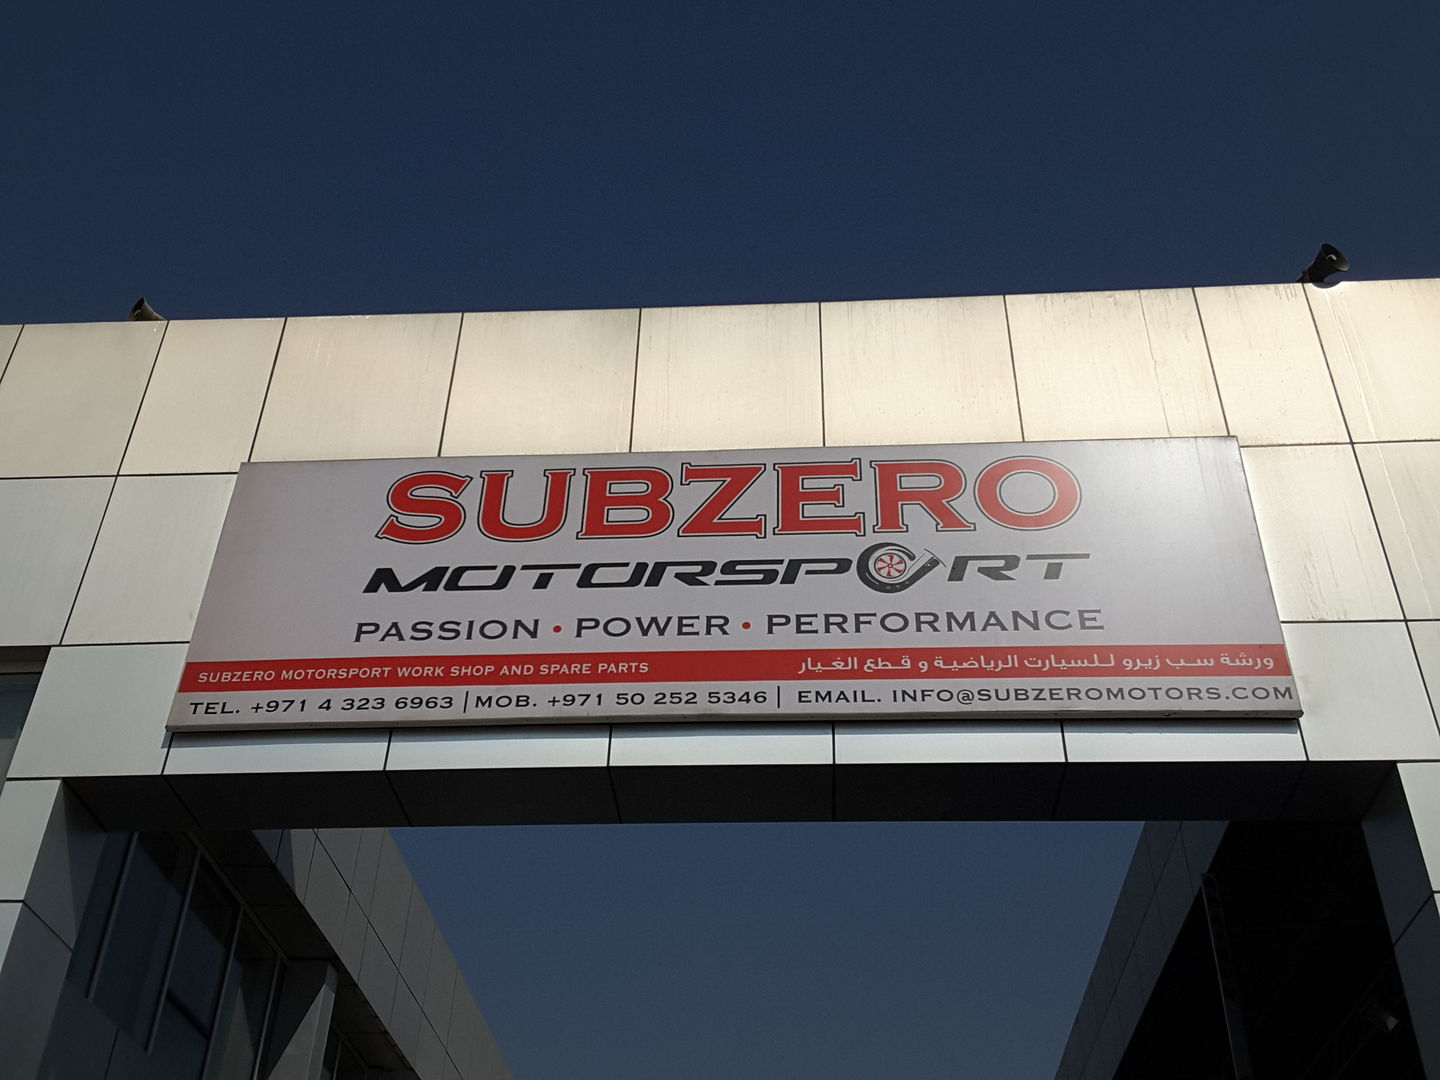 HiDubai-business-subzero-motorsport-workshop-and-spare-parts-transport-vehicle-services-car-assistance-repair-al-quoz-industrial-3-dubai-2